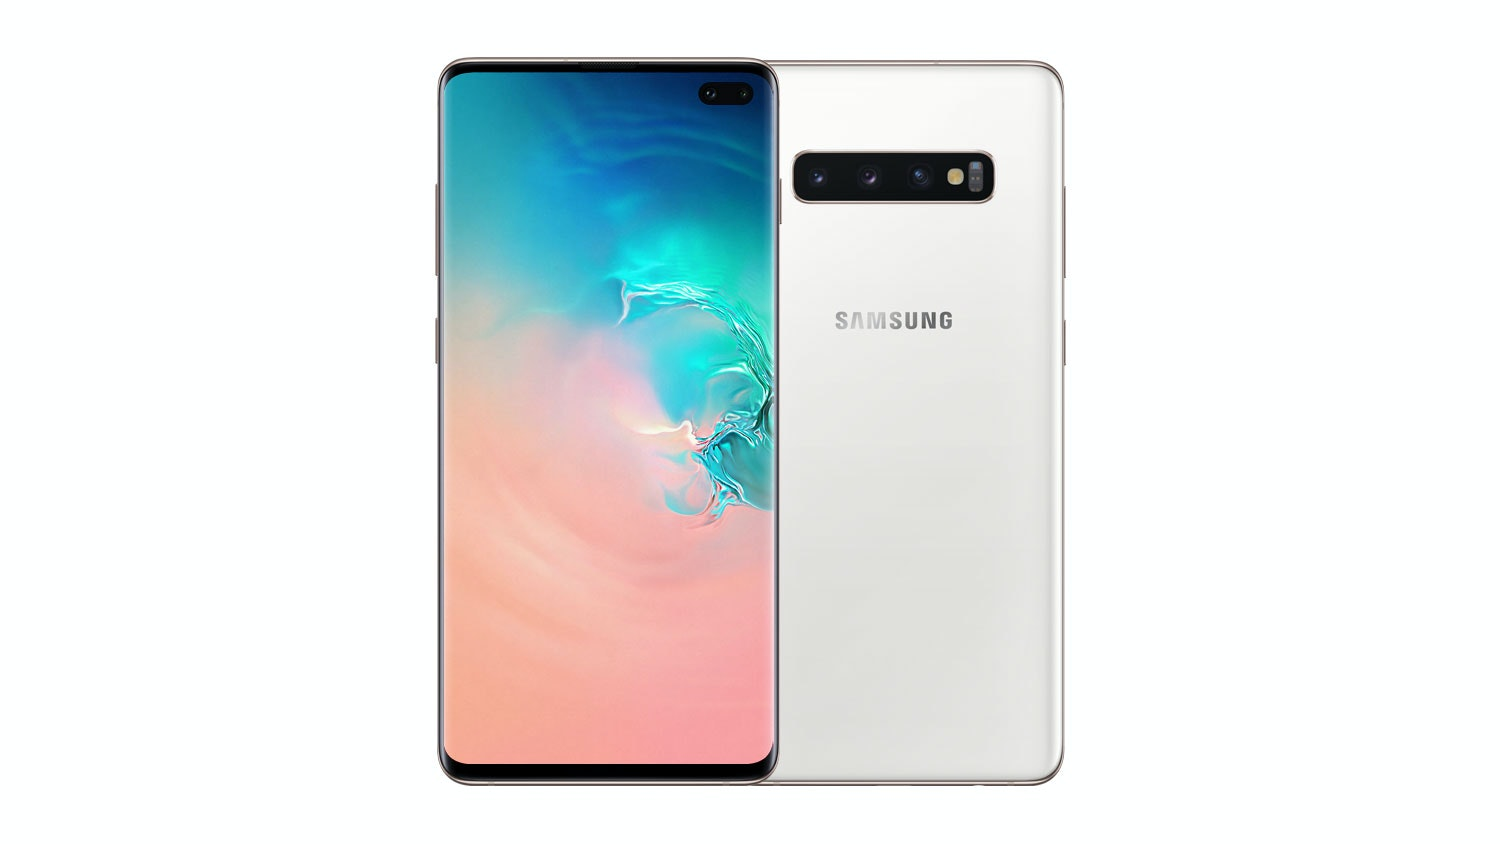 2degrees Samsung Galaxy S10+ Smartphone - 512GB